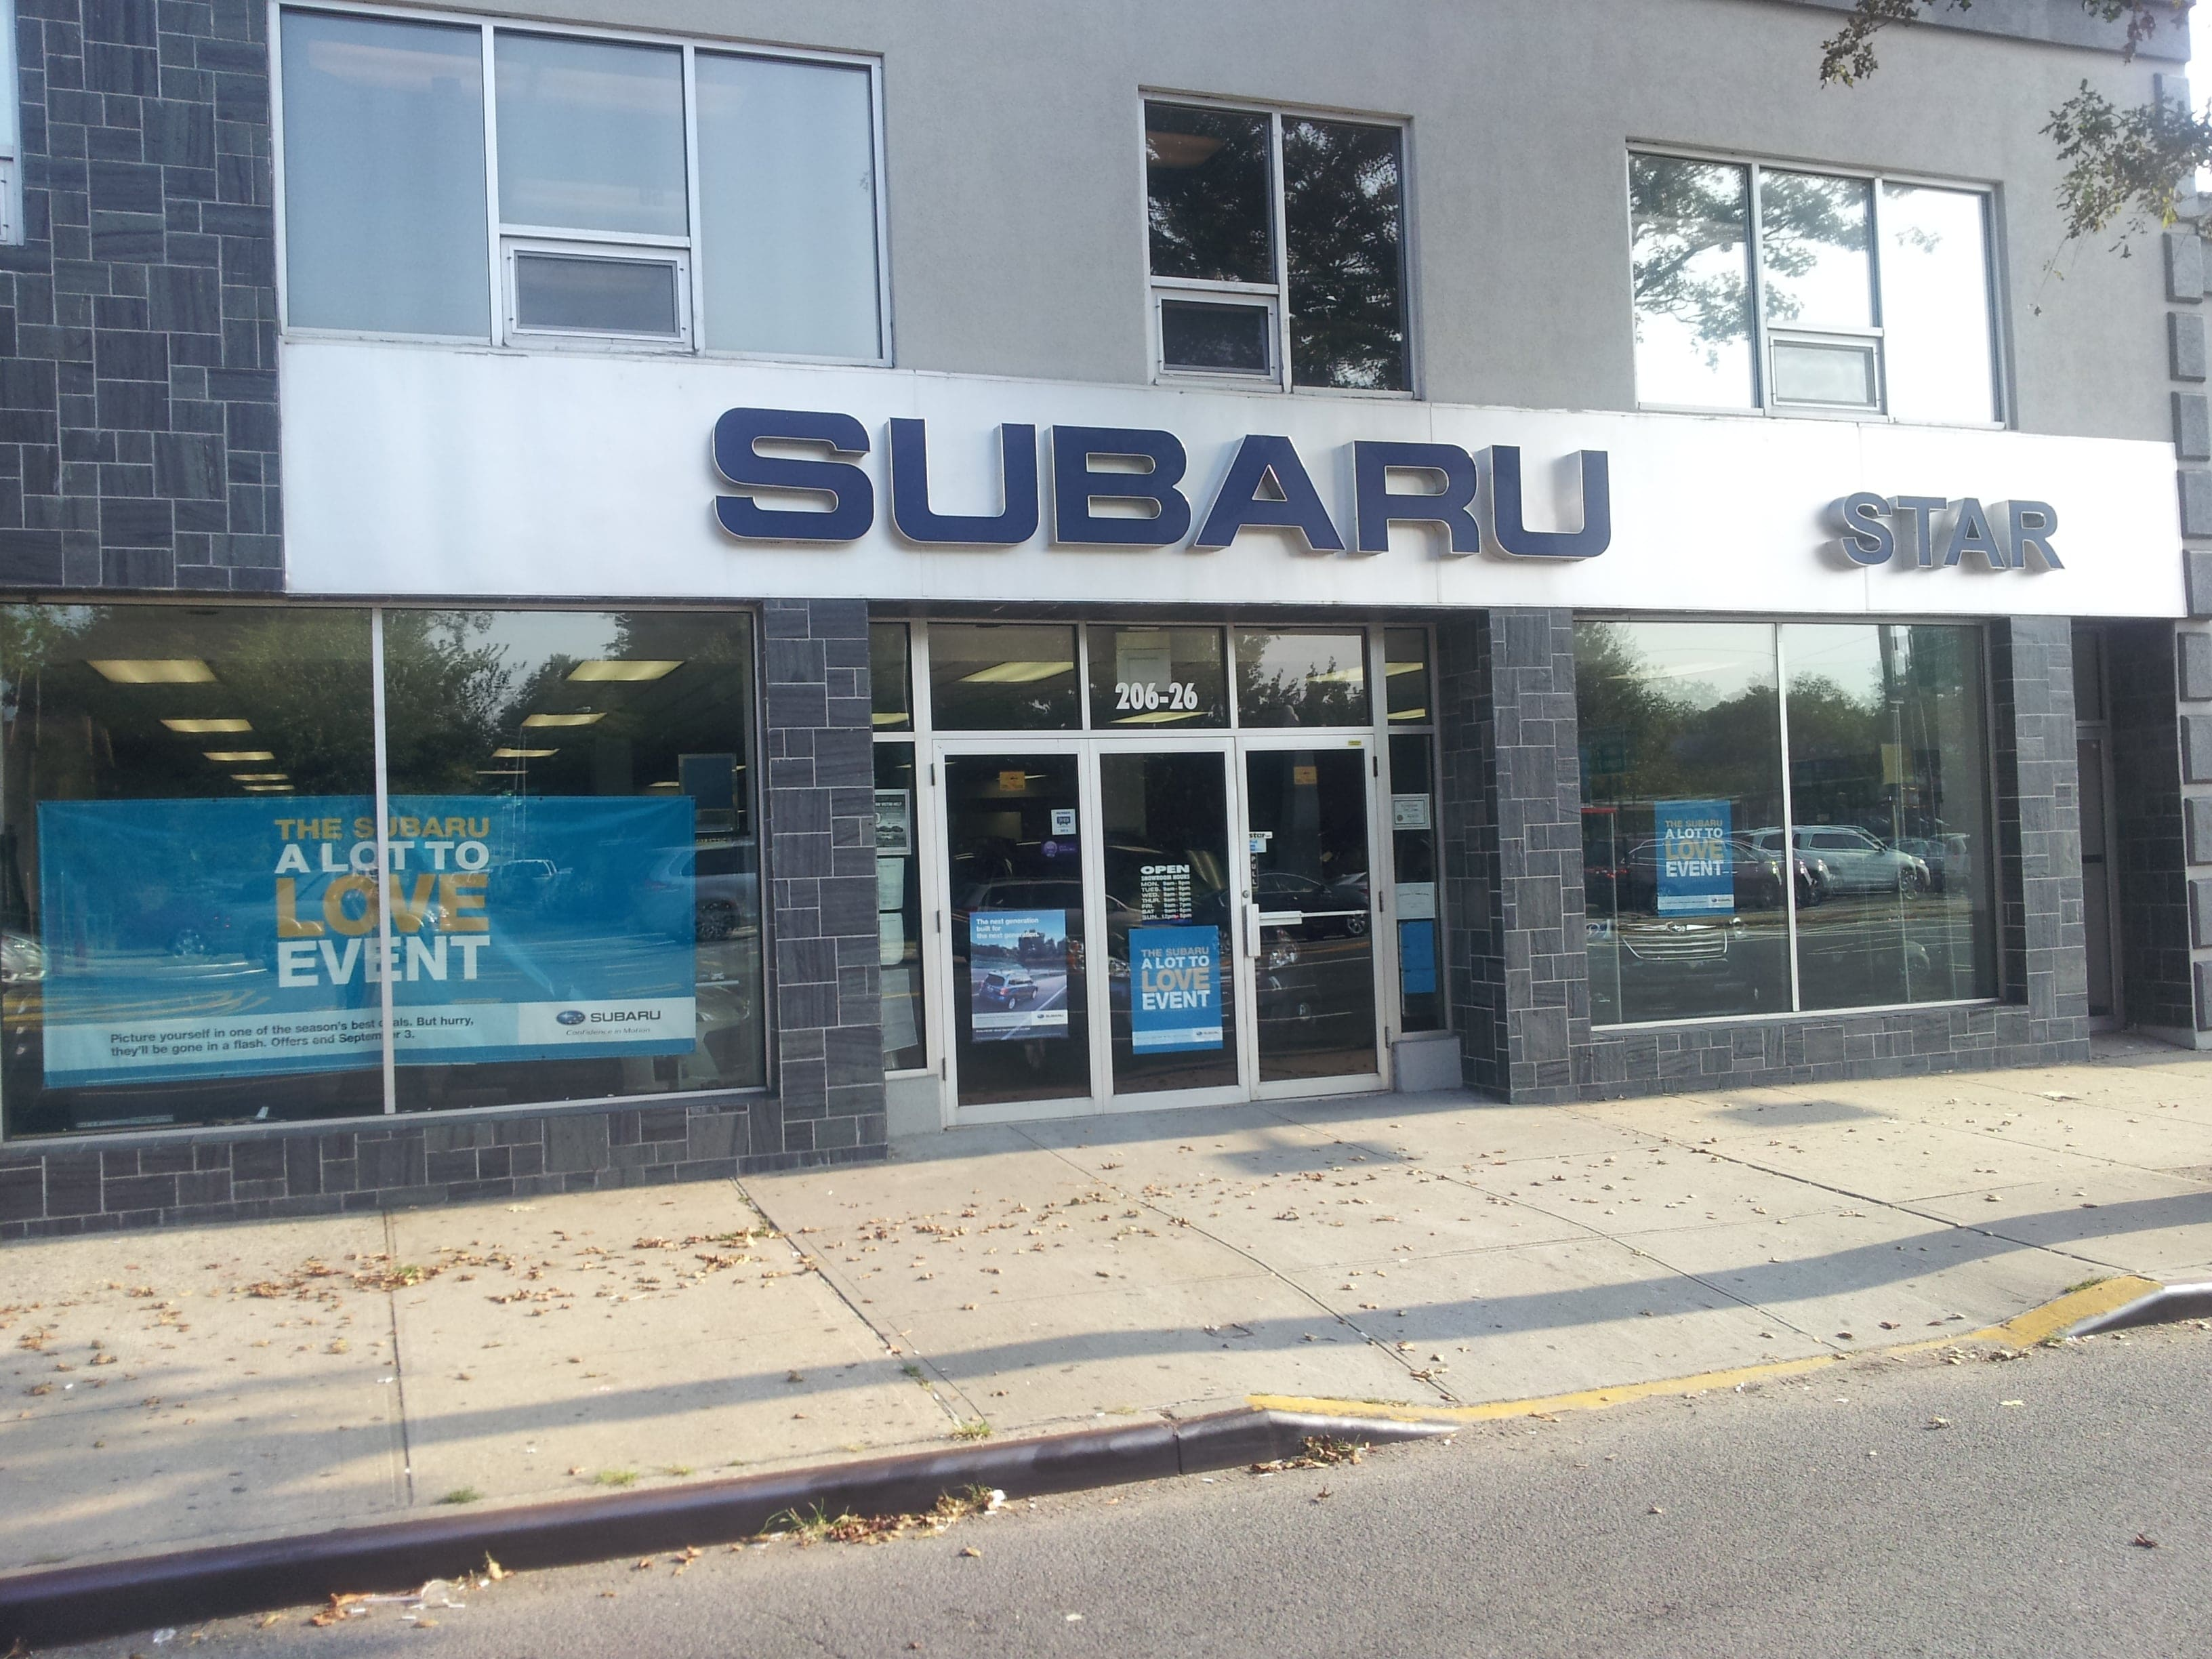 Subaru Love Promise Begins With Star Subaru in Bayside, NY